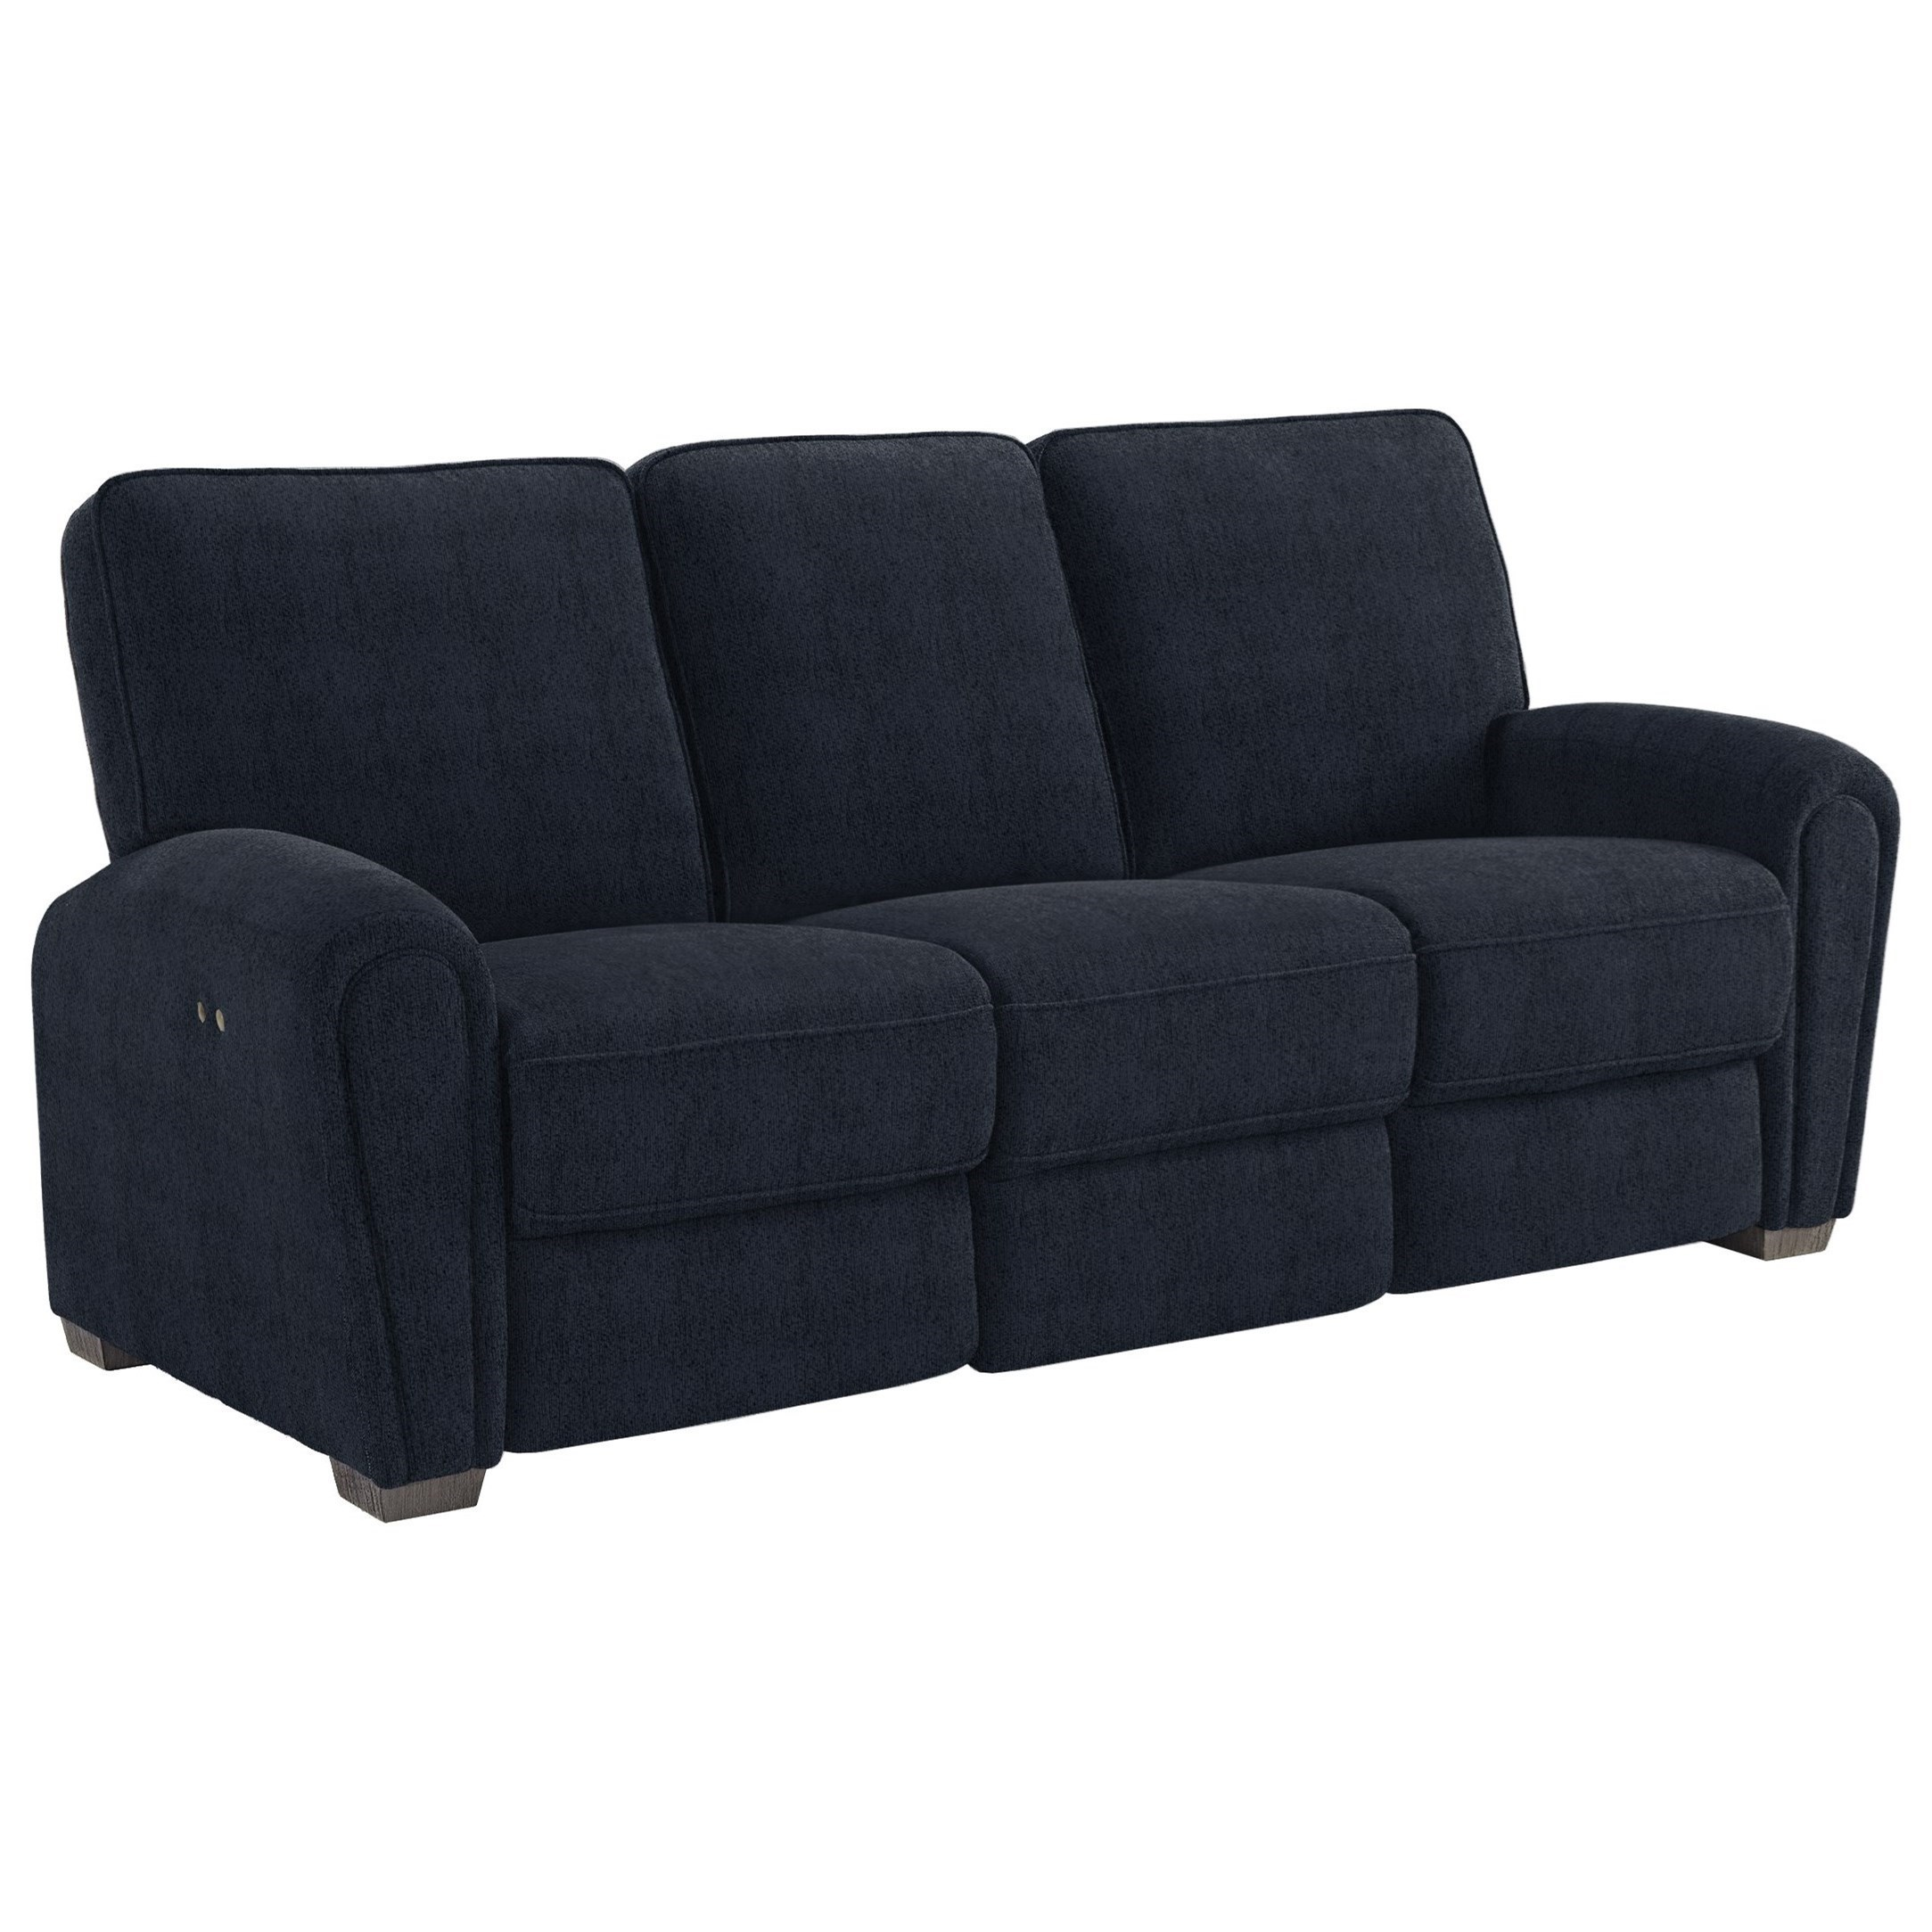 Best Home Furnishings Miriam Power Motion Sofa - Item Number: S907RP2-20562